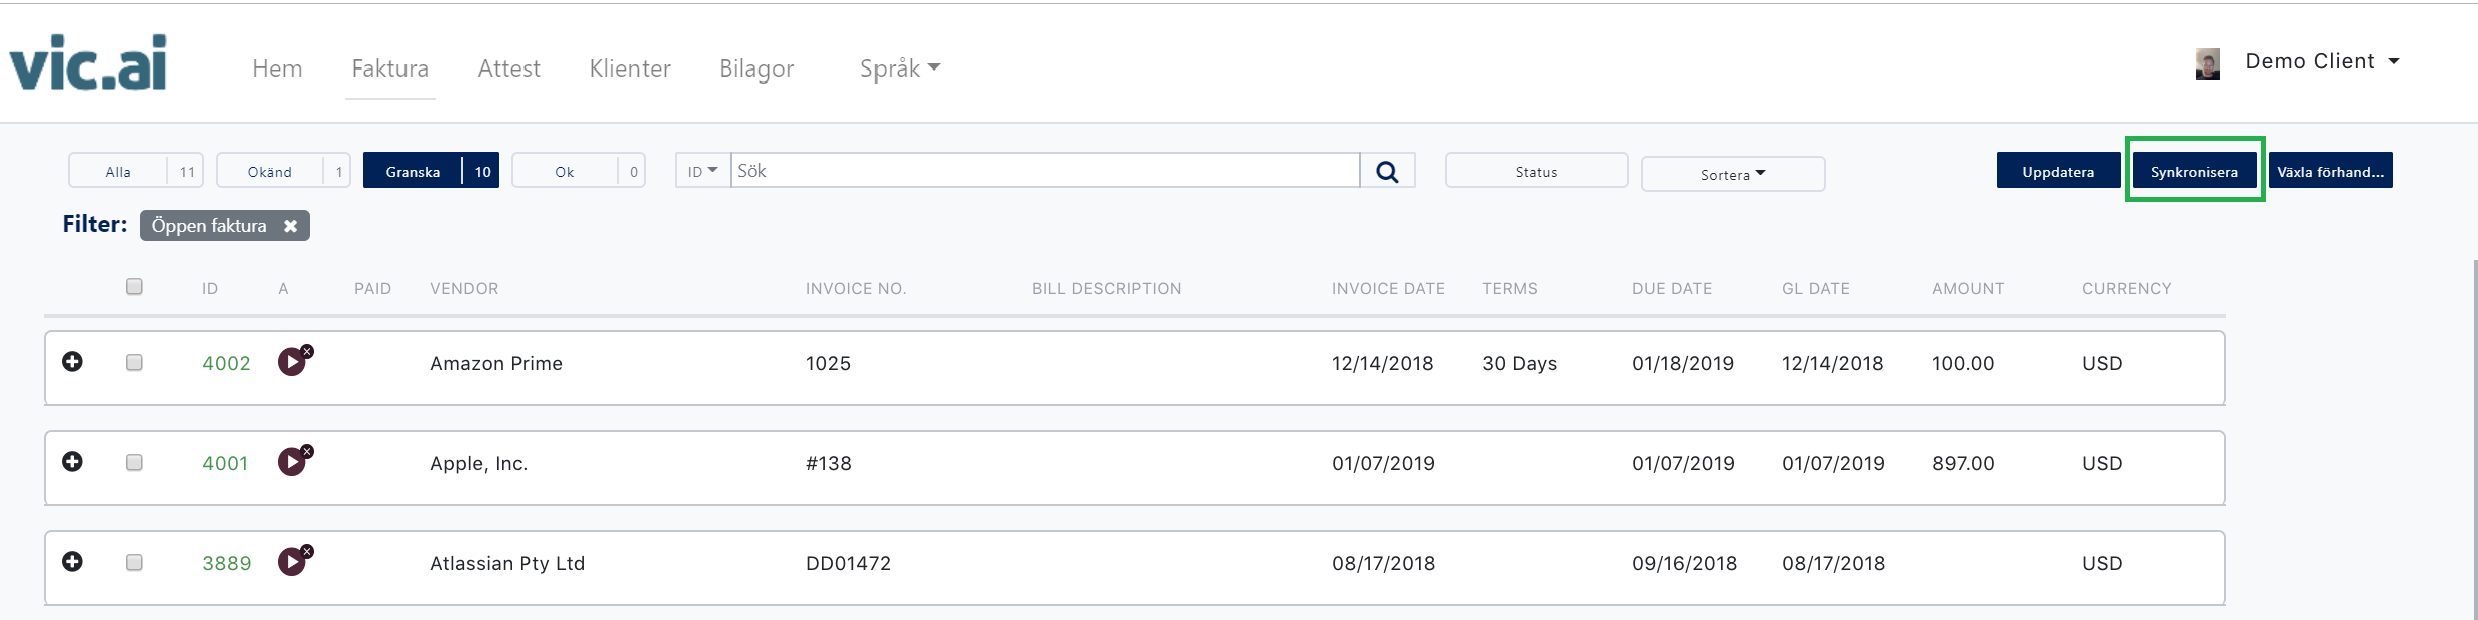 Vic_ai_Dashboard_Invoice_Overview_4.png